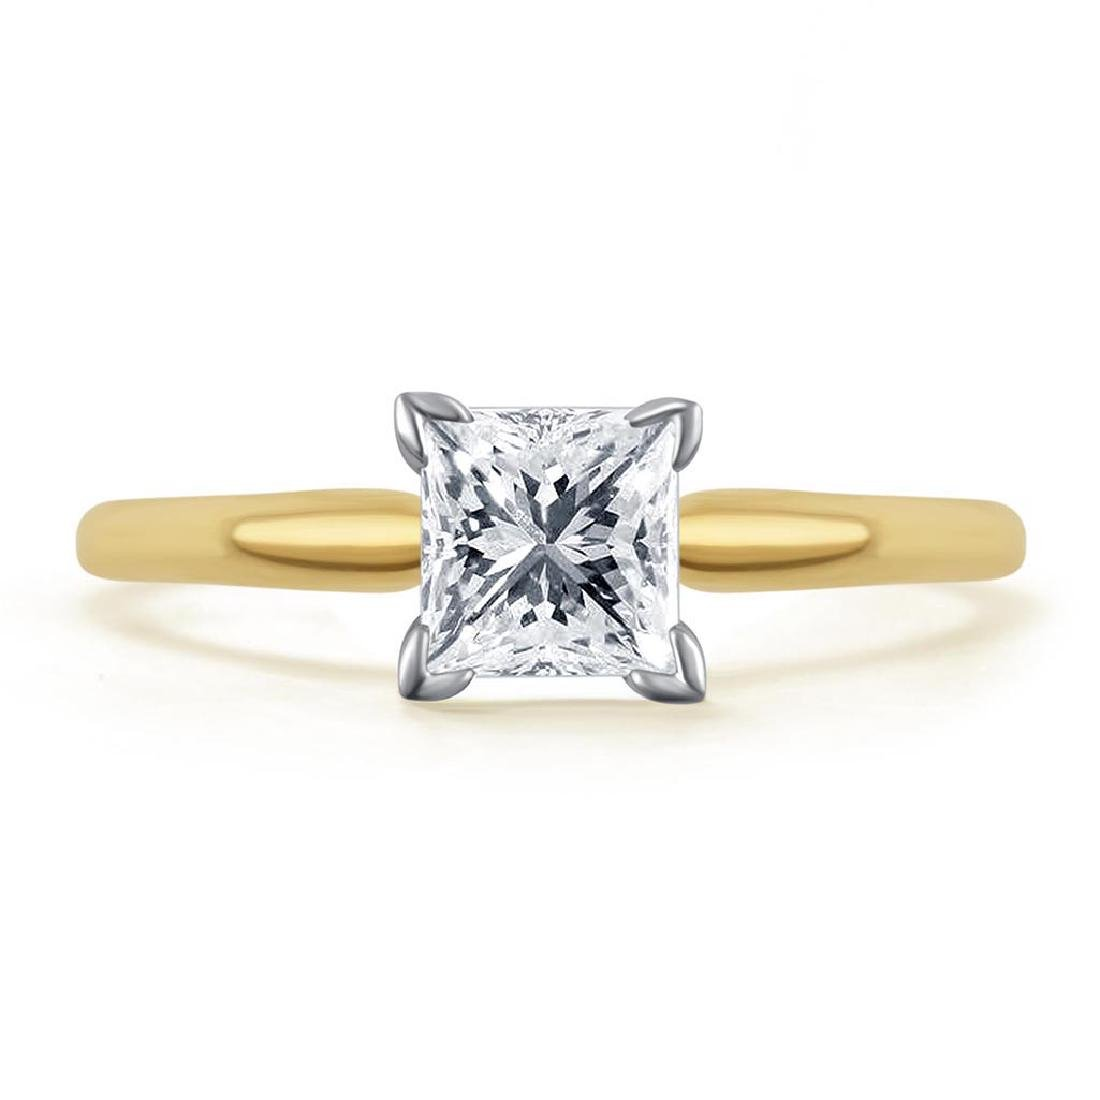 CERTIFIED 0.95 CTW PRINCESS H/SI1 SOLITAIRE RING IN 14K